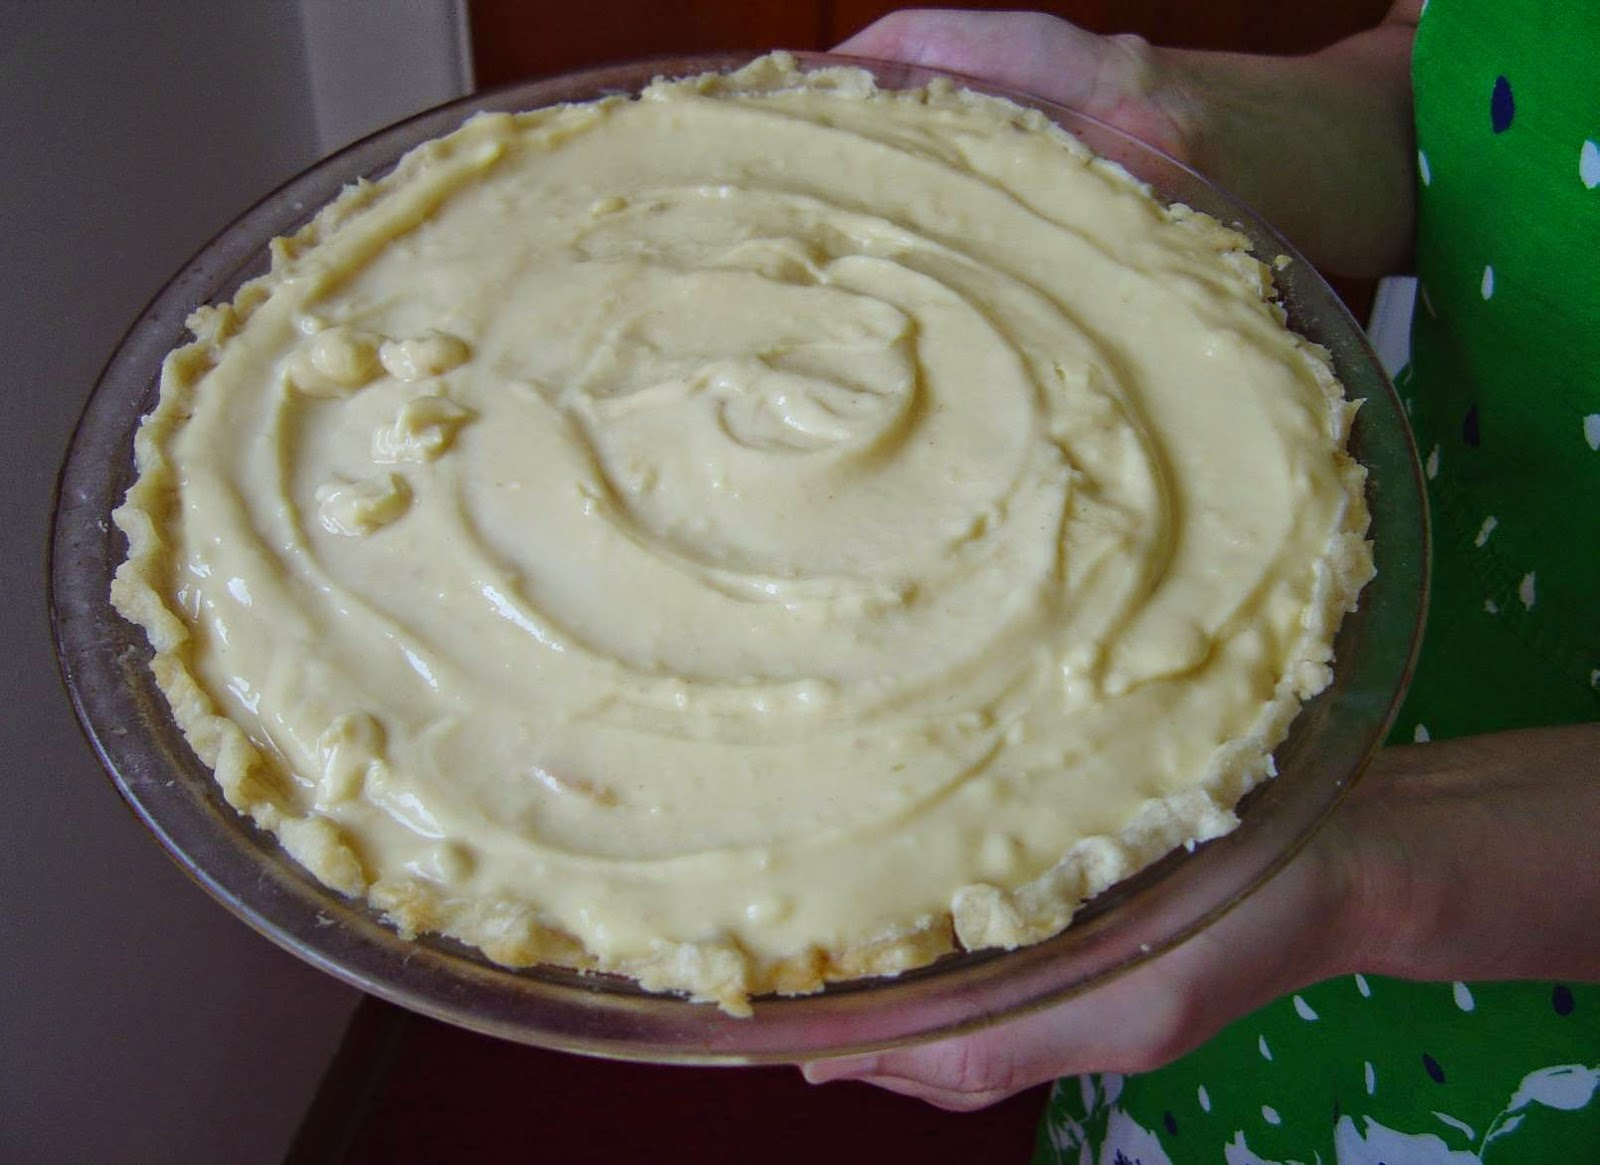 My  Banana Cream Pie Image